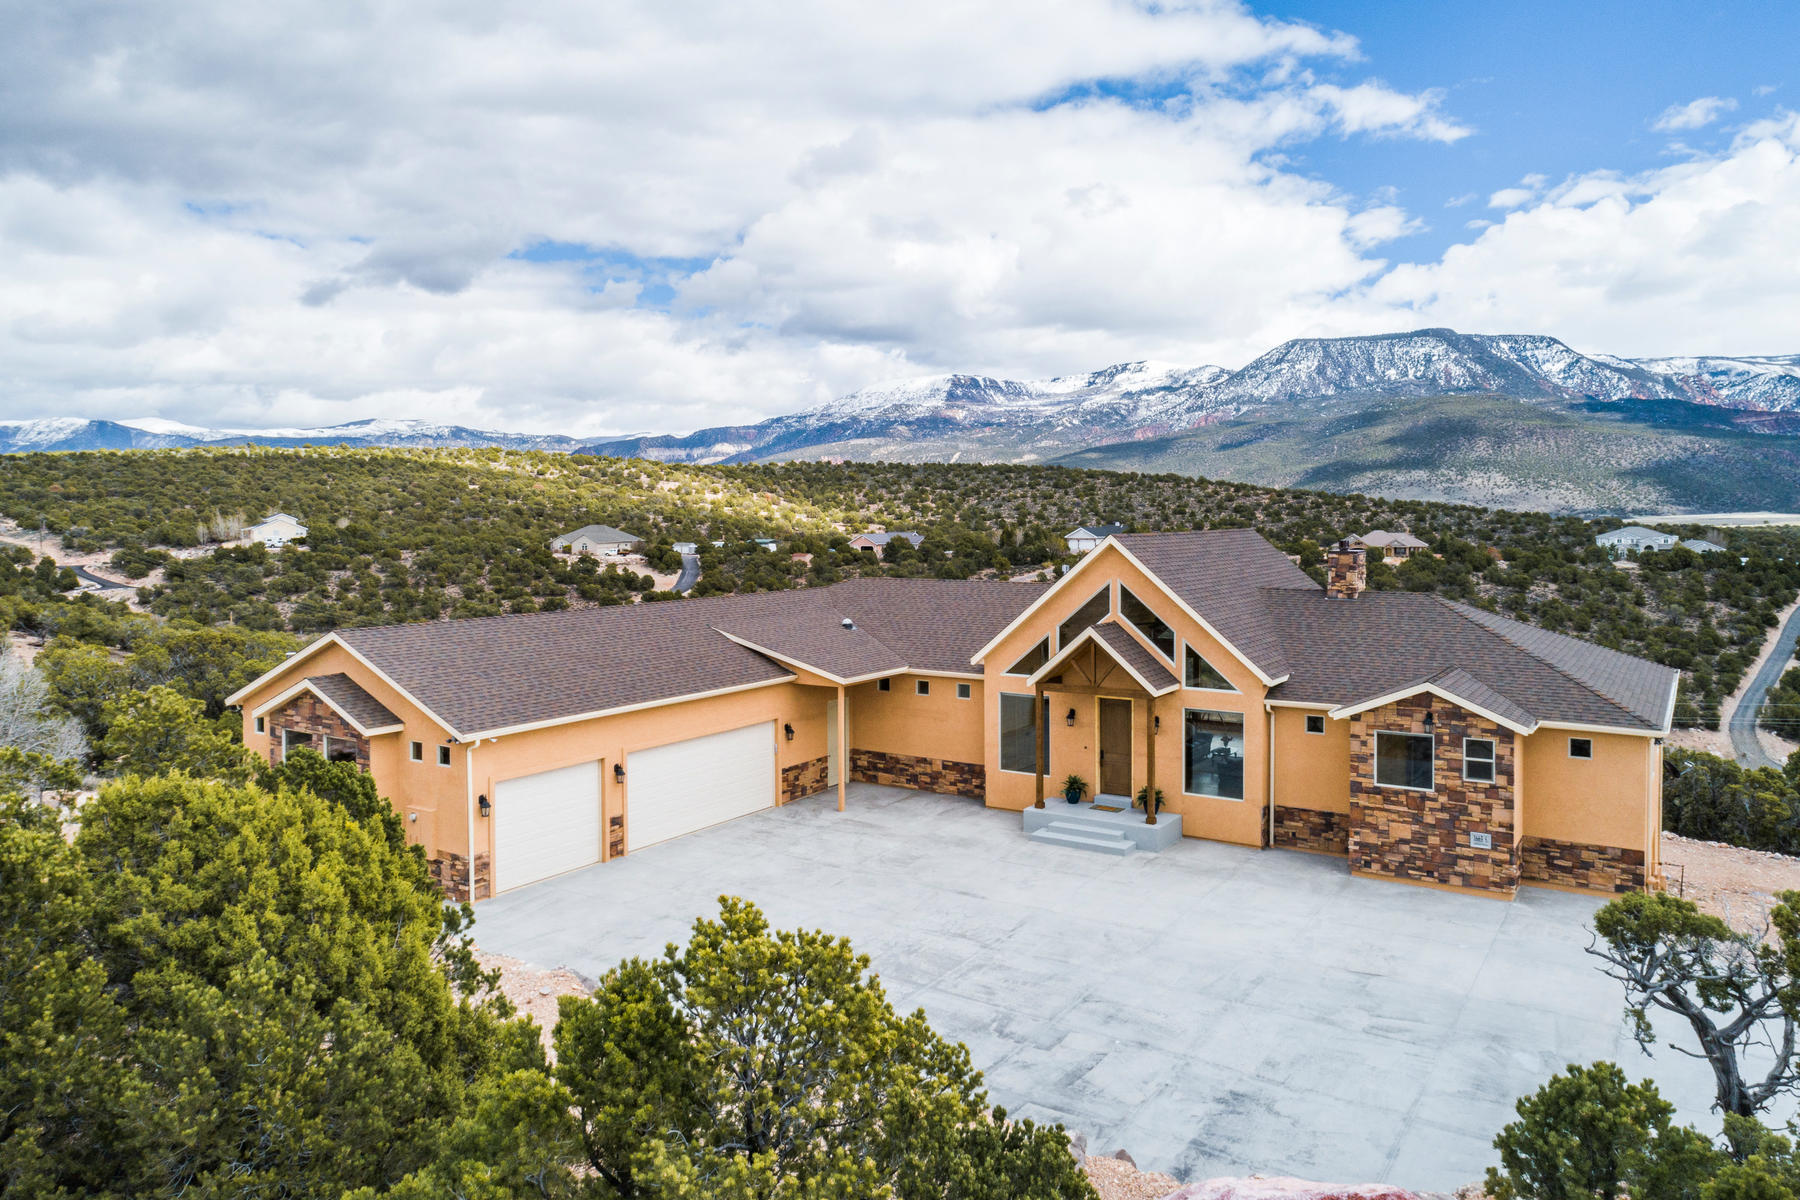 Single Family Homes for Active at Award Winning Mountain View Home 1665 S Hill Crest Dr Cedar City, Utah 84720 United States